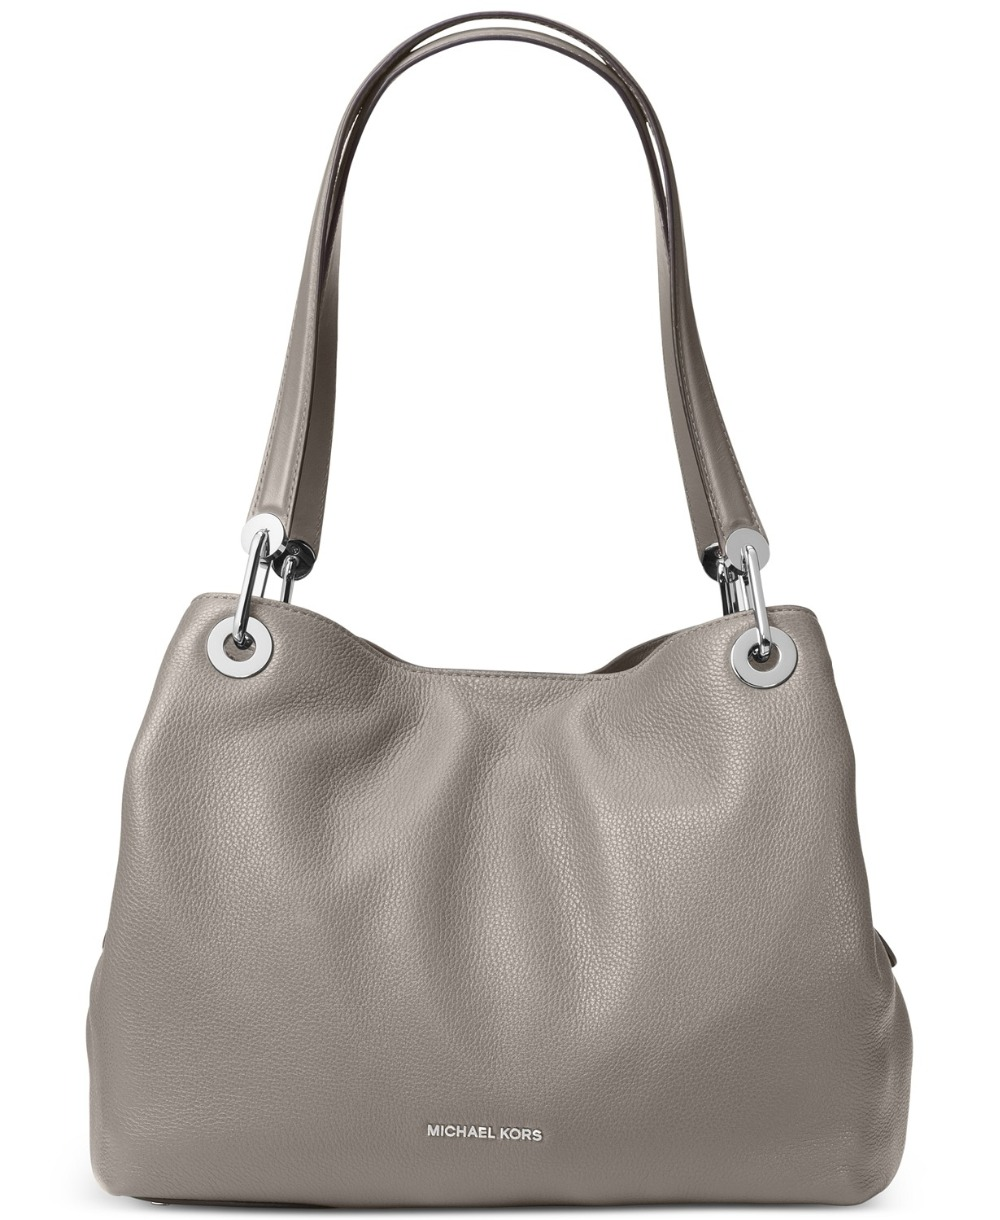 Michael Kors Raven Pebble Leather Shoulder Tote (Pearl Gray/Silver) Luxury  Handbags For Women Bags Designer by MK on Aliexpress.com | Alibaba Group